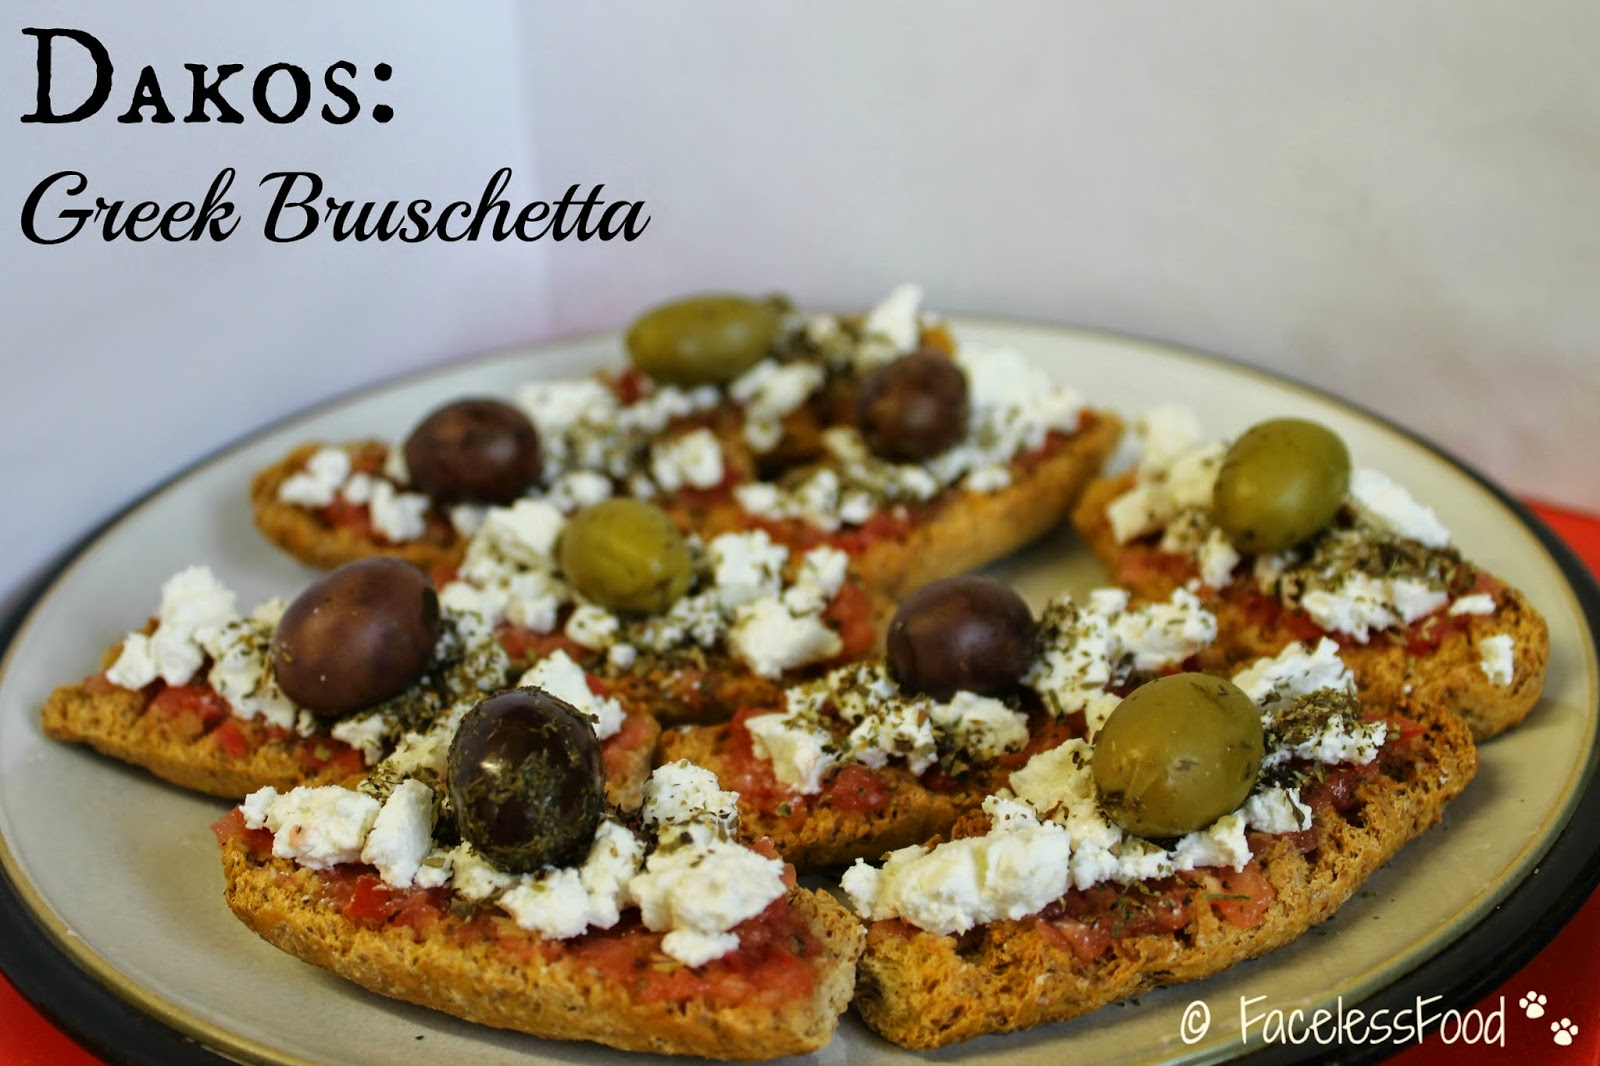 Dakos - Greek bruschetta